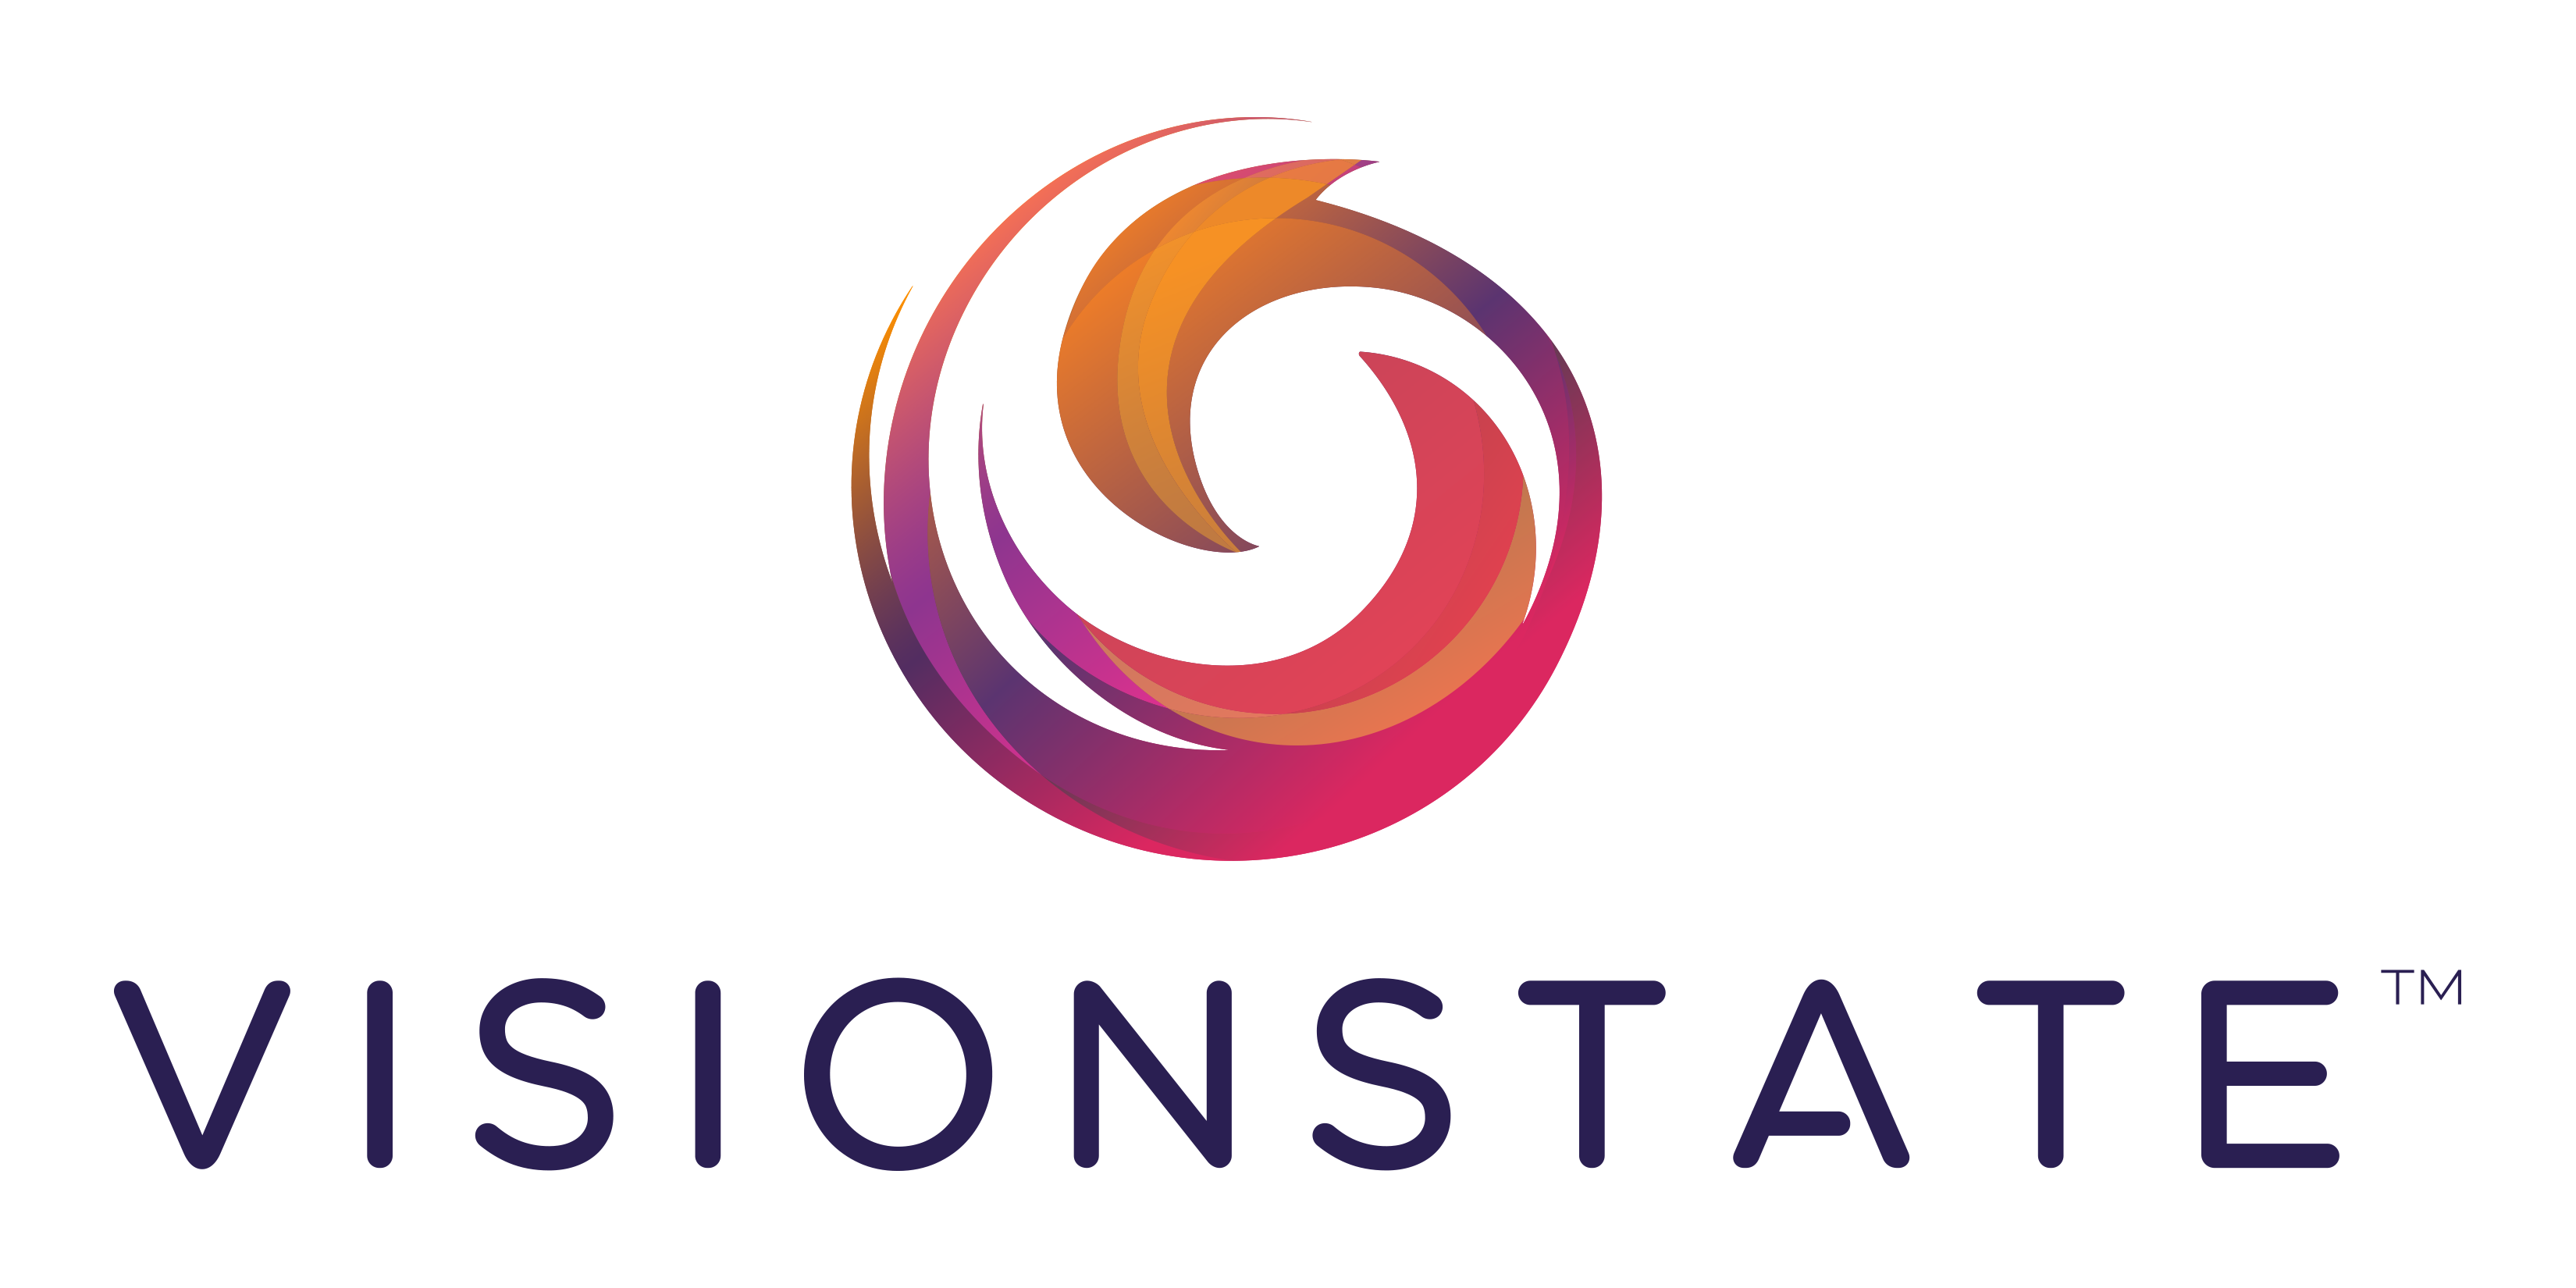 Visionstate Announces Collaboration with Bunzl on New IoT Technology